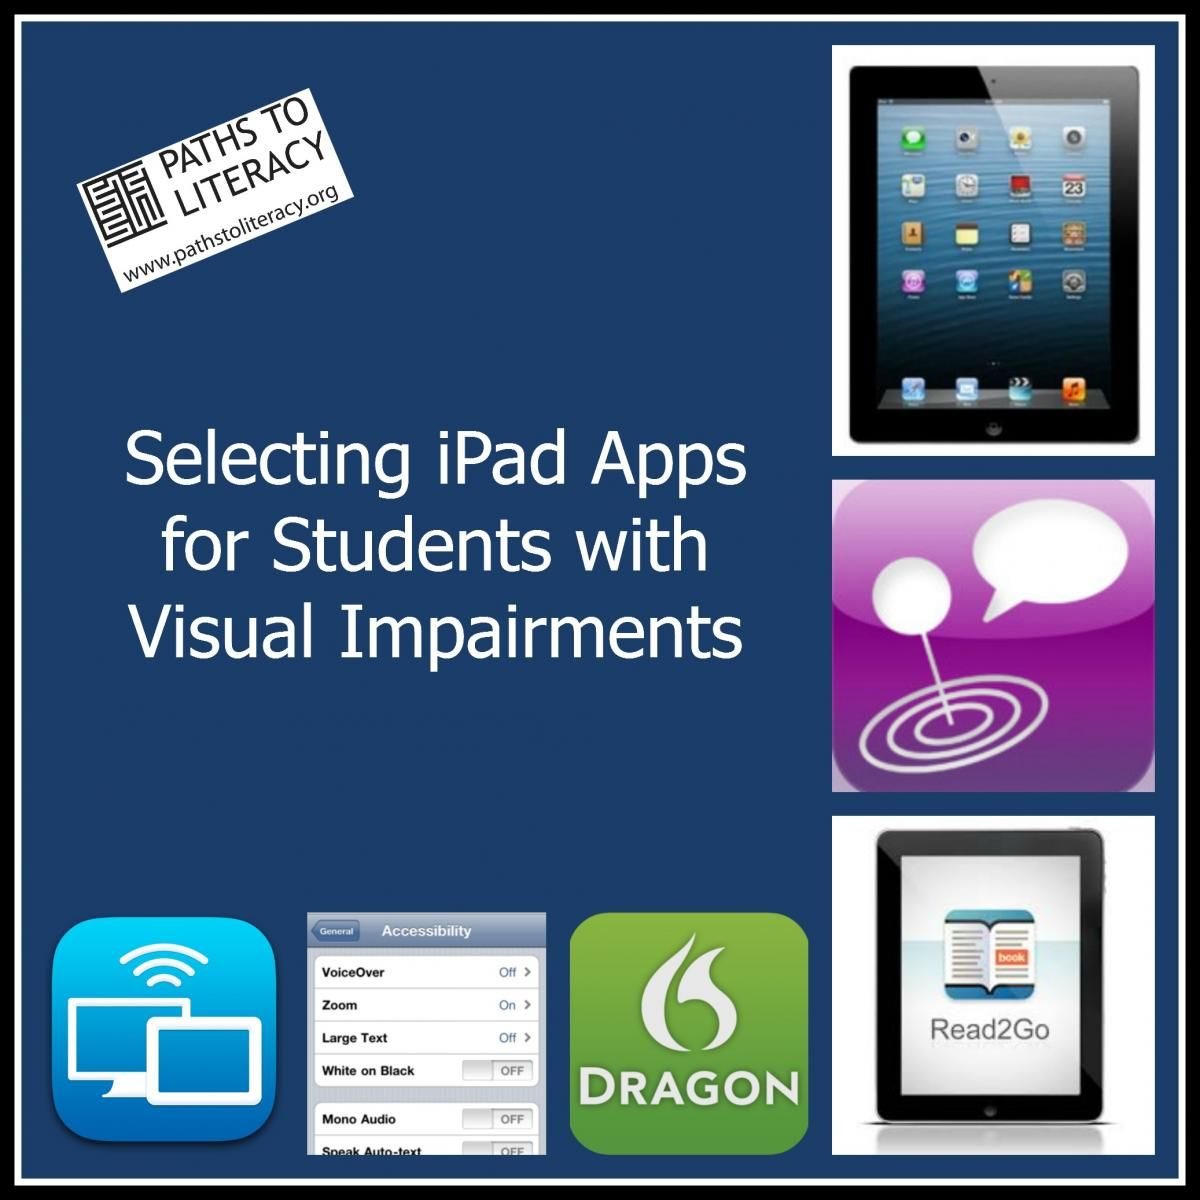 How to Select iPad Apps for Students with Visual